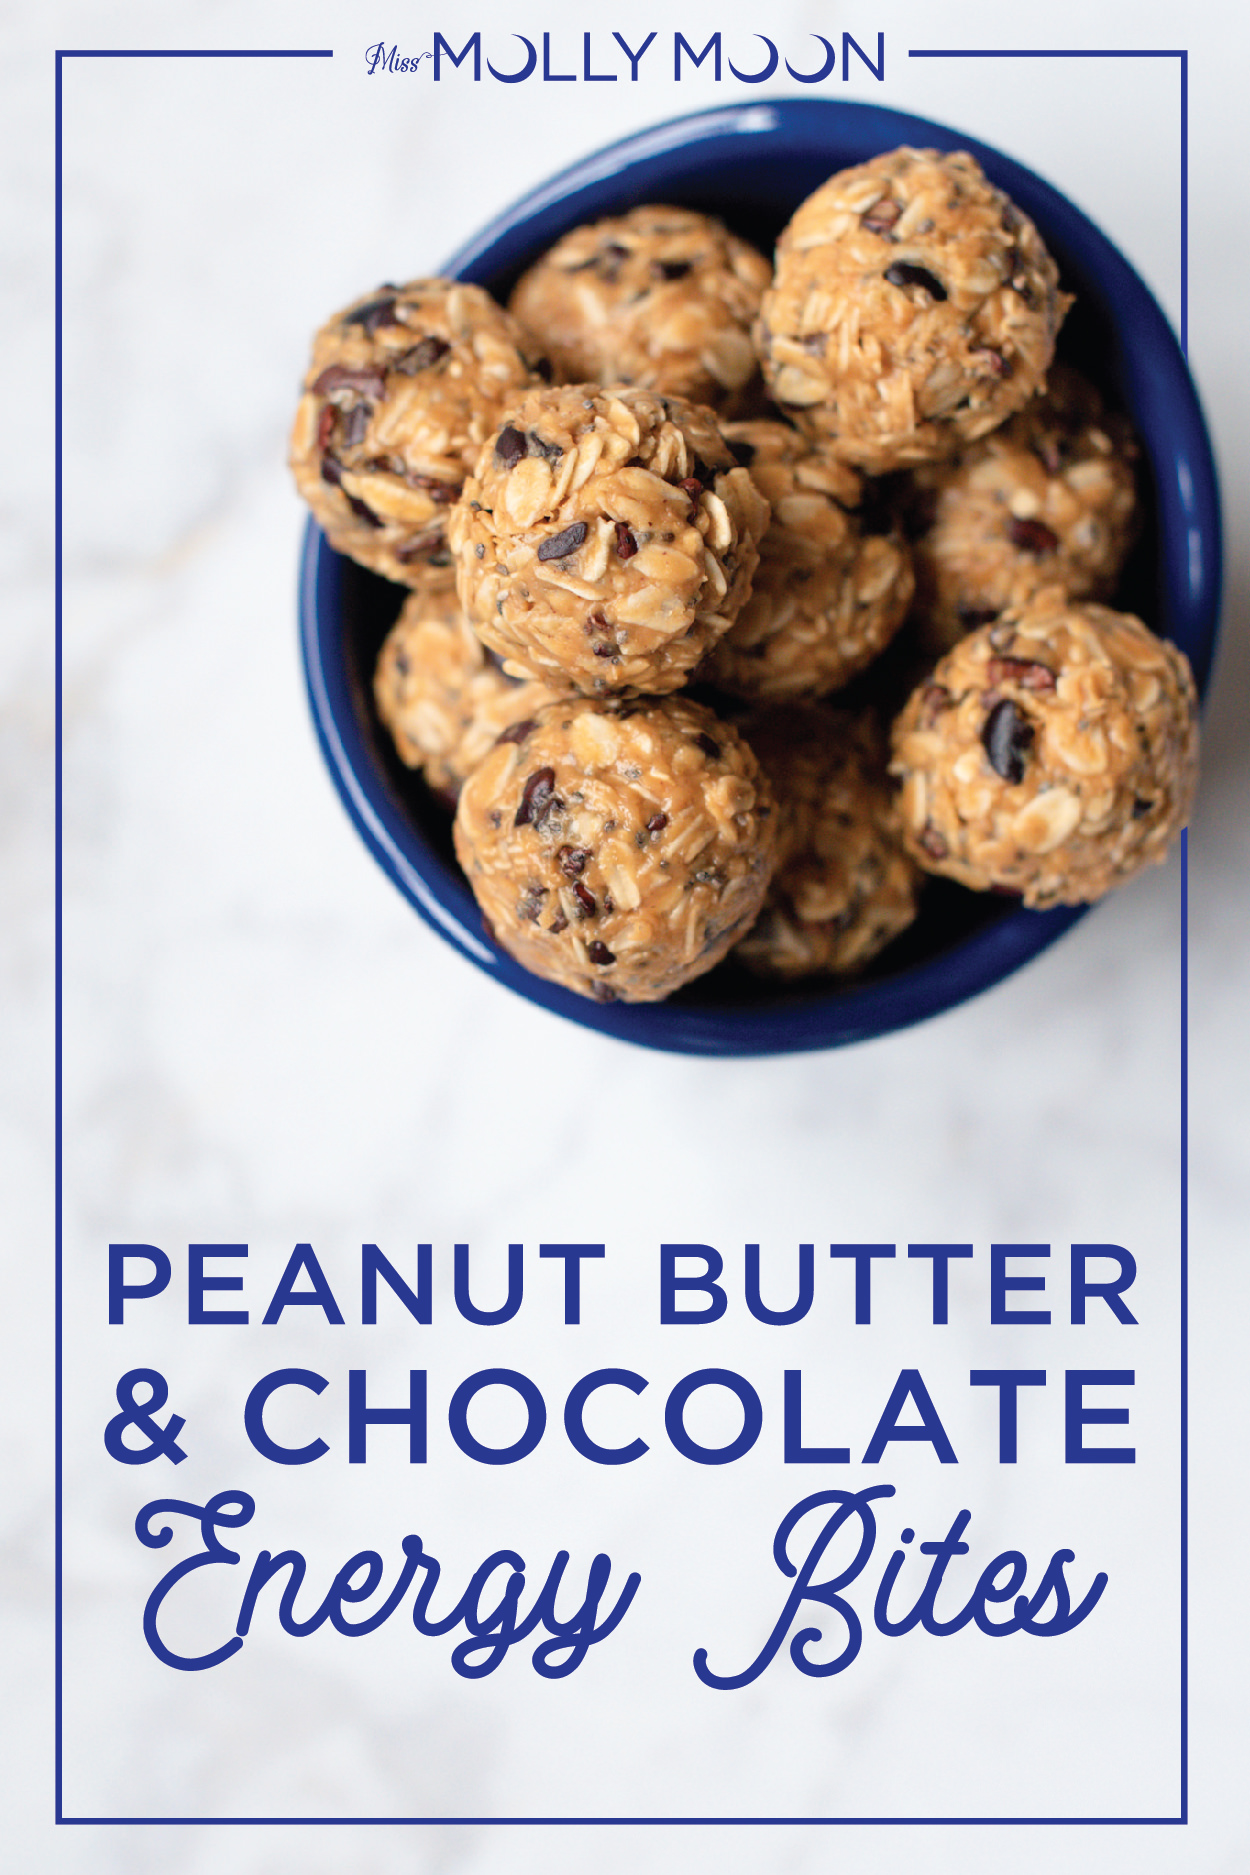 Peanut Butter & Chocolate Energy Bites in a blue bowl.